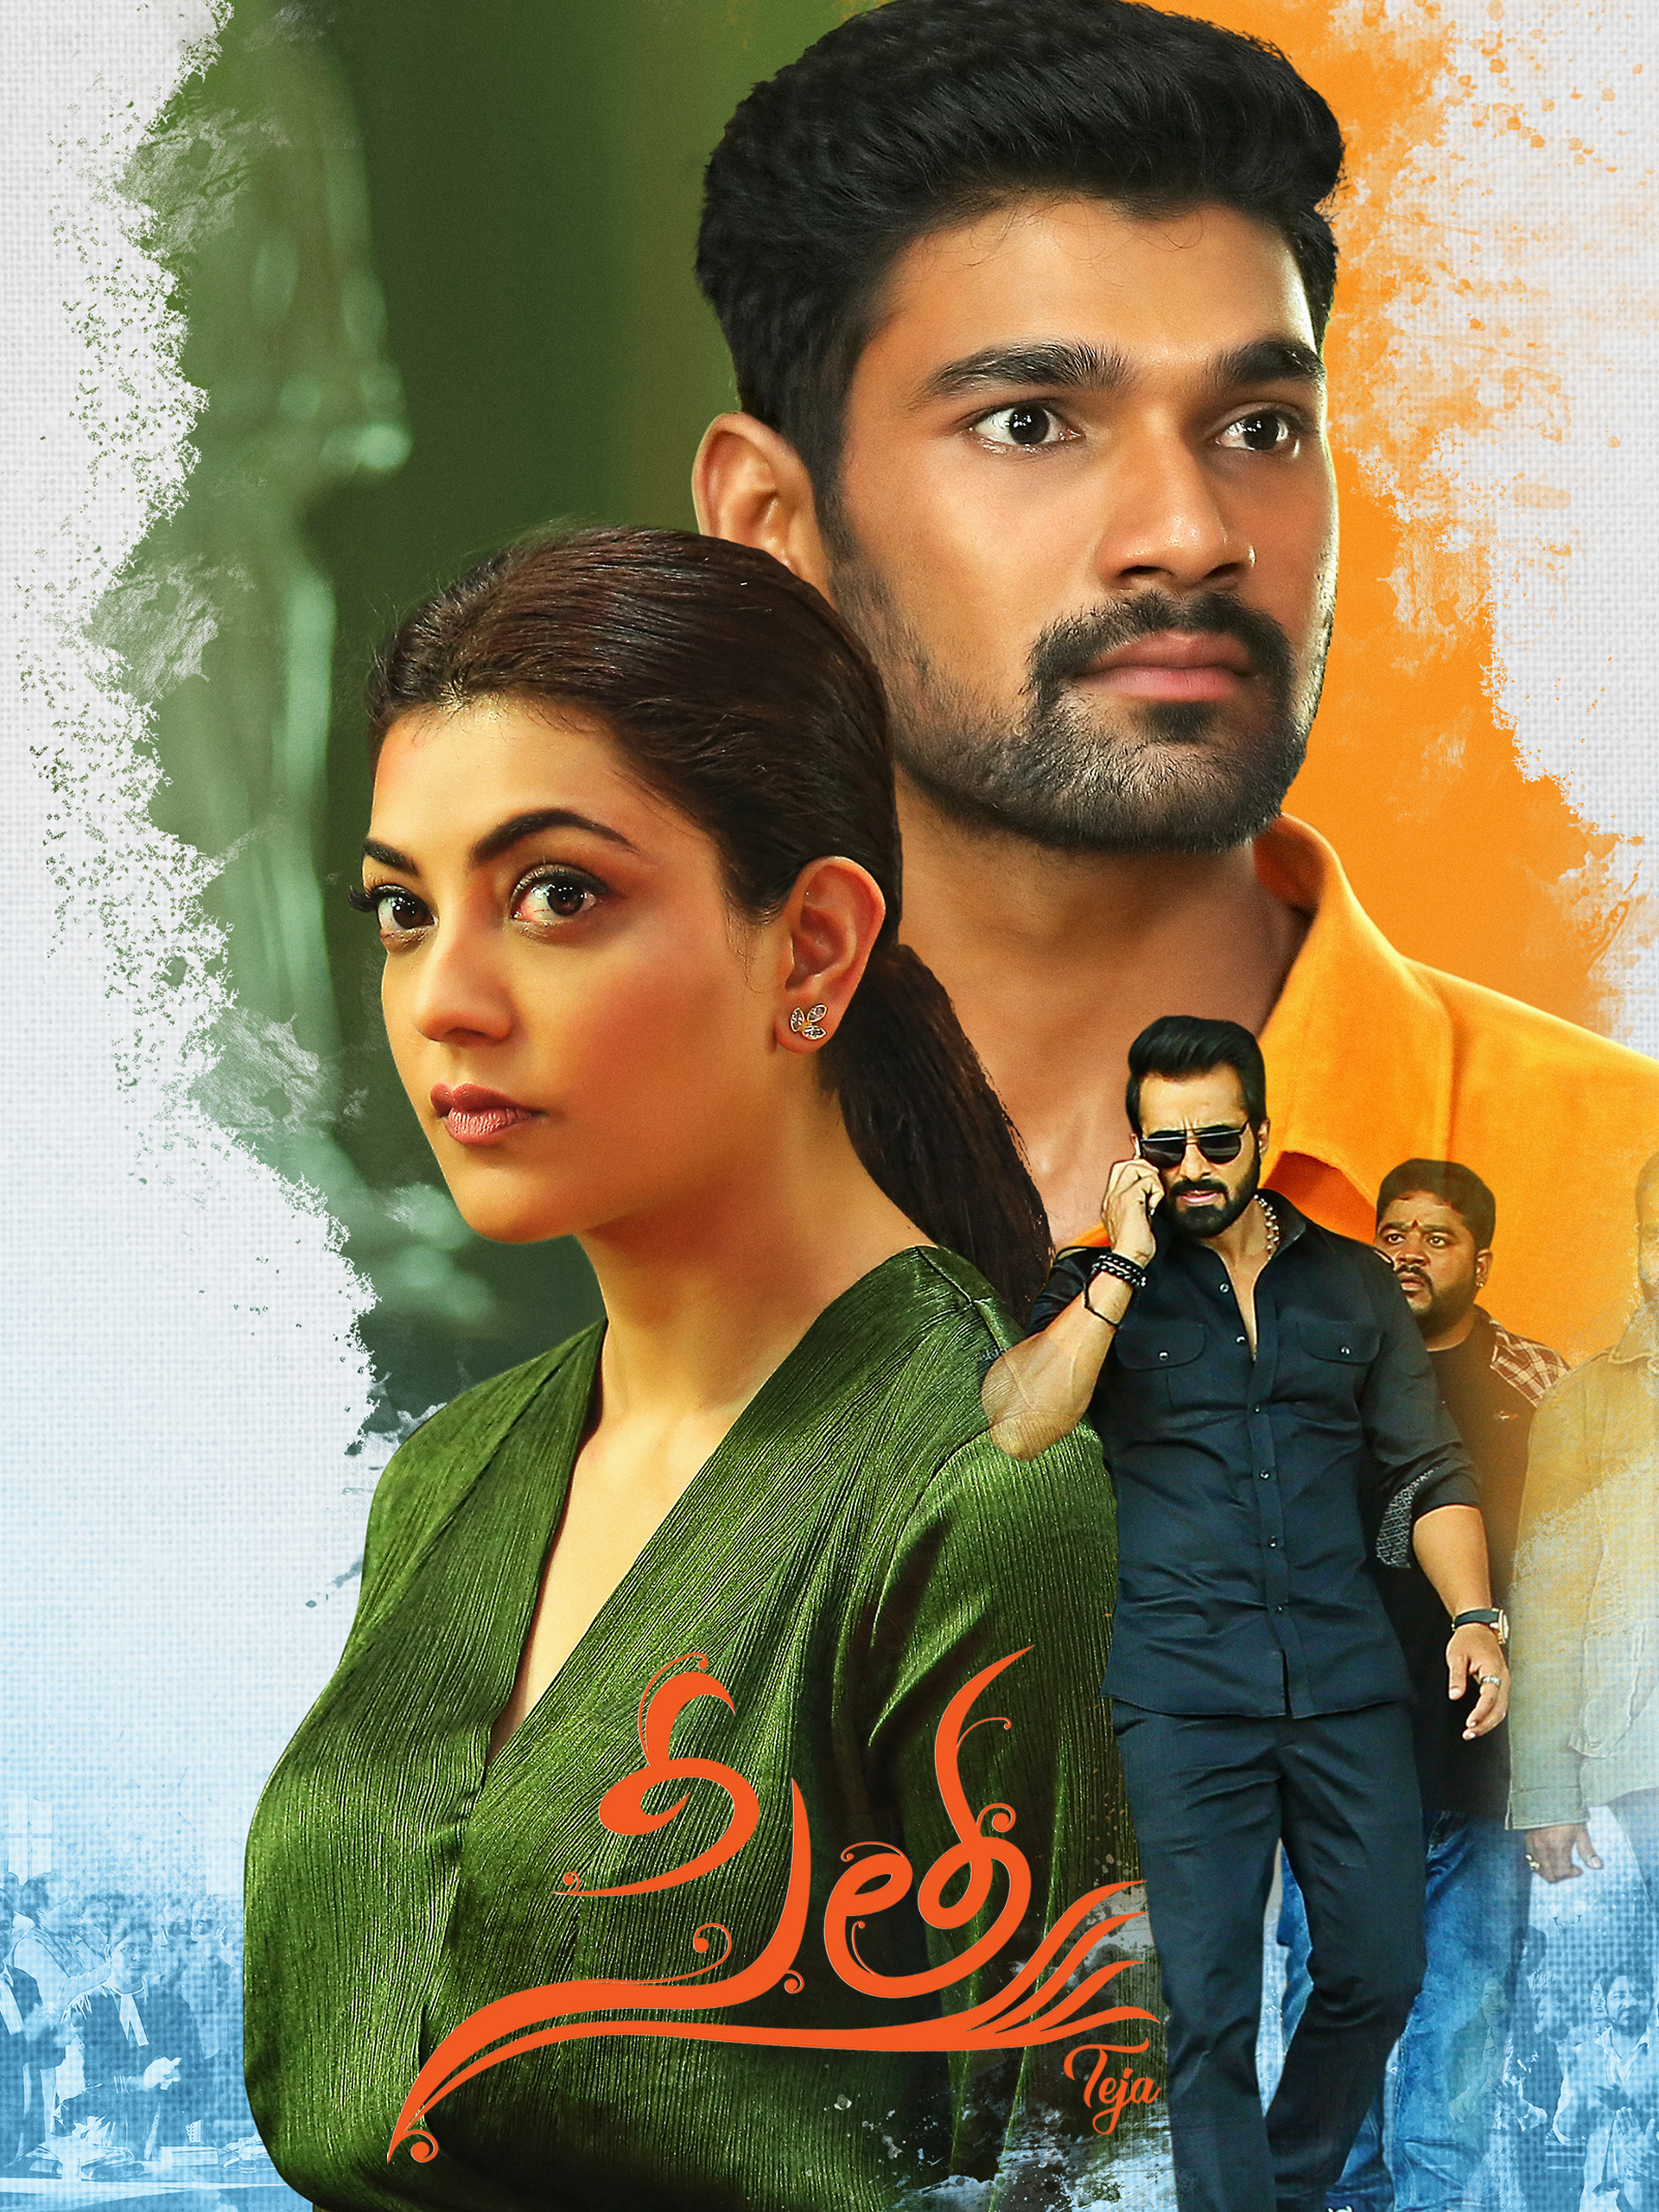 Sita Ram (Sita) 2020 Hindi Dubbed 400MB HDRip Download